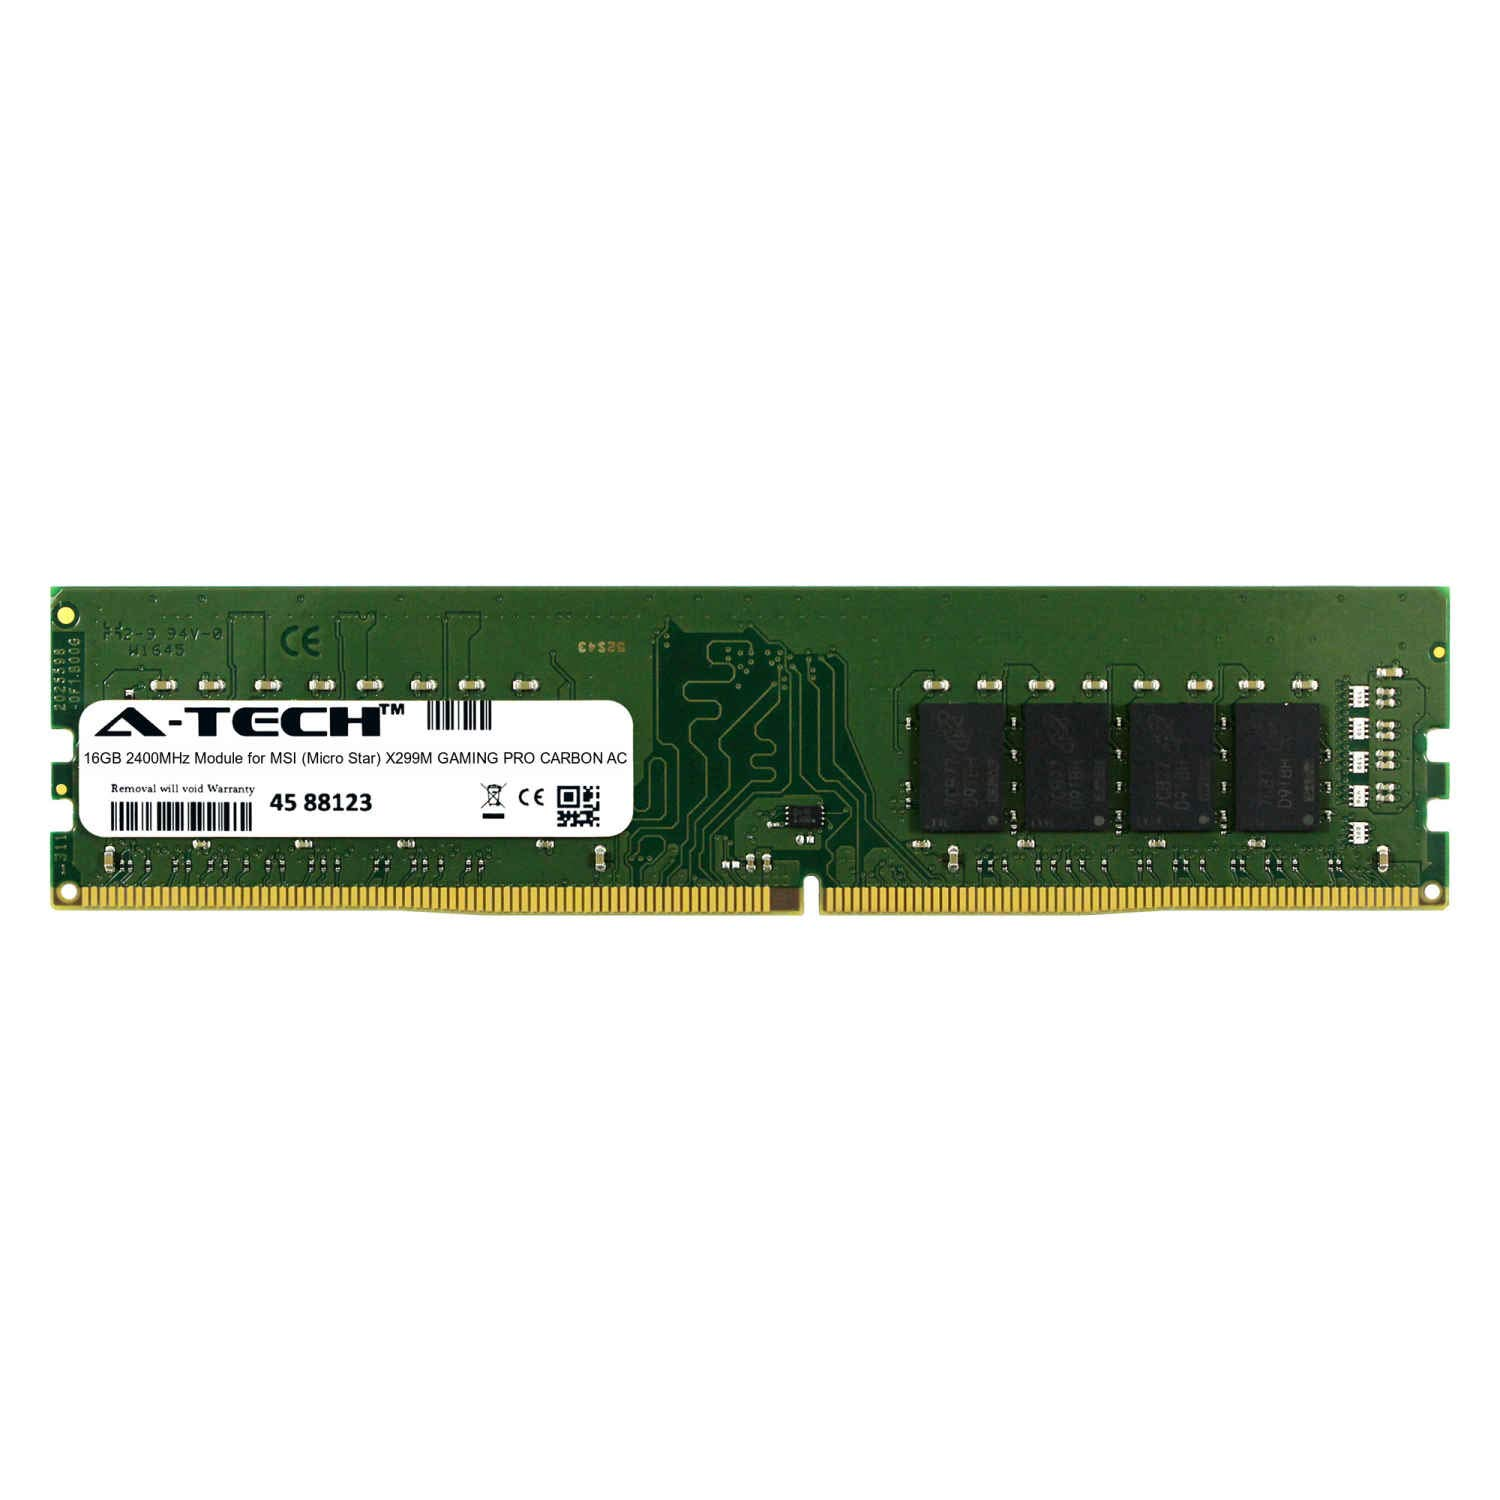 A-Tech 16GB Module for MSI (Micro Star) X299M Gaming PRO Carbon AC Desktop & Workstation Motherboard Compatible DDR4 2400Mhz Memory Ram (ATMS367762A25822X1)